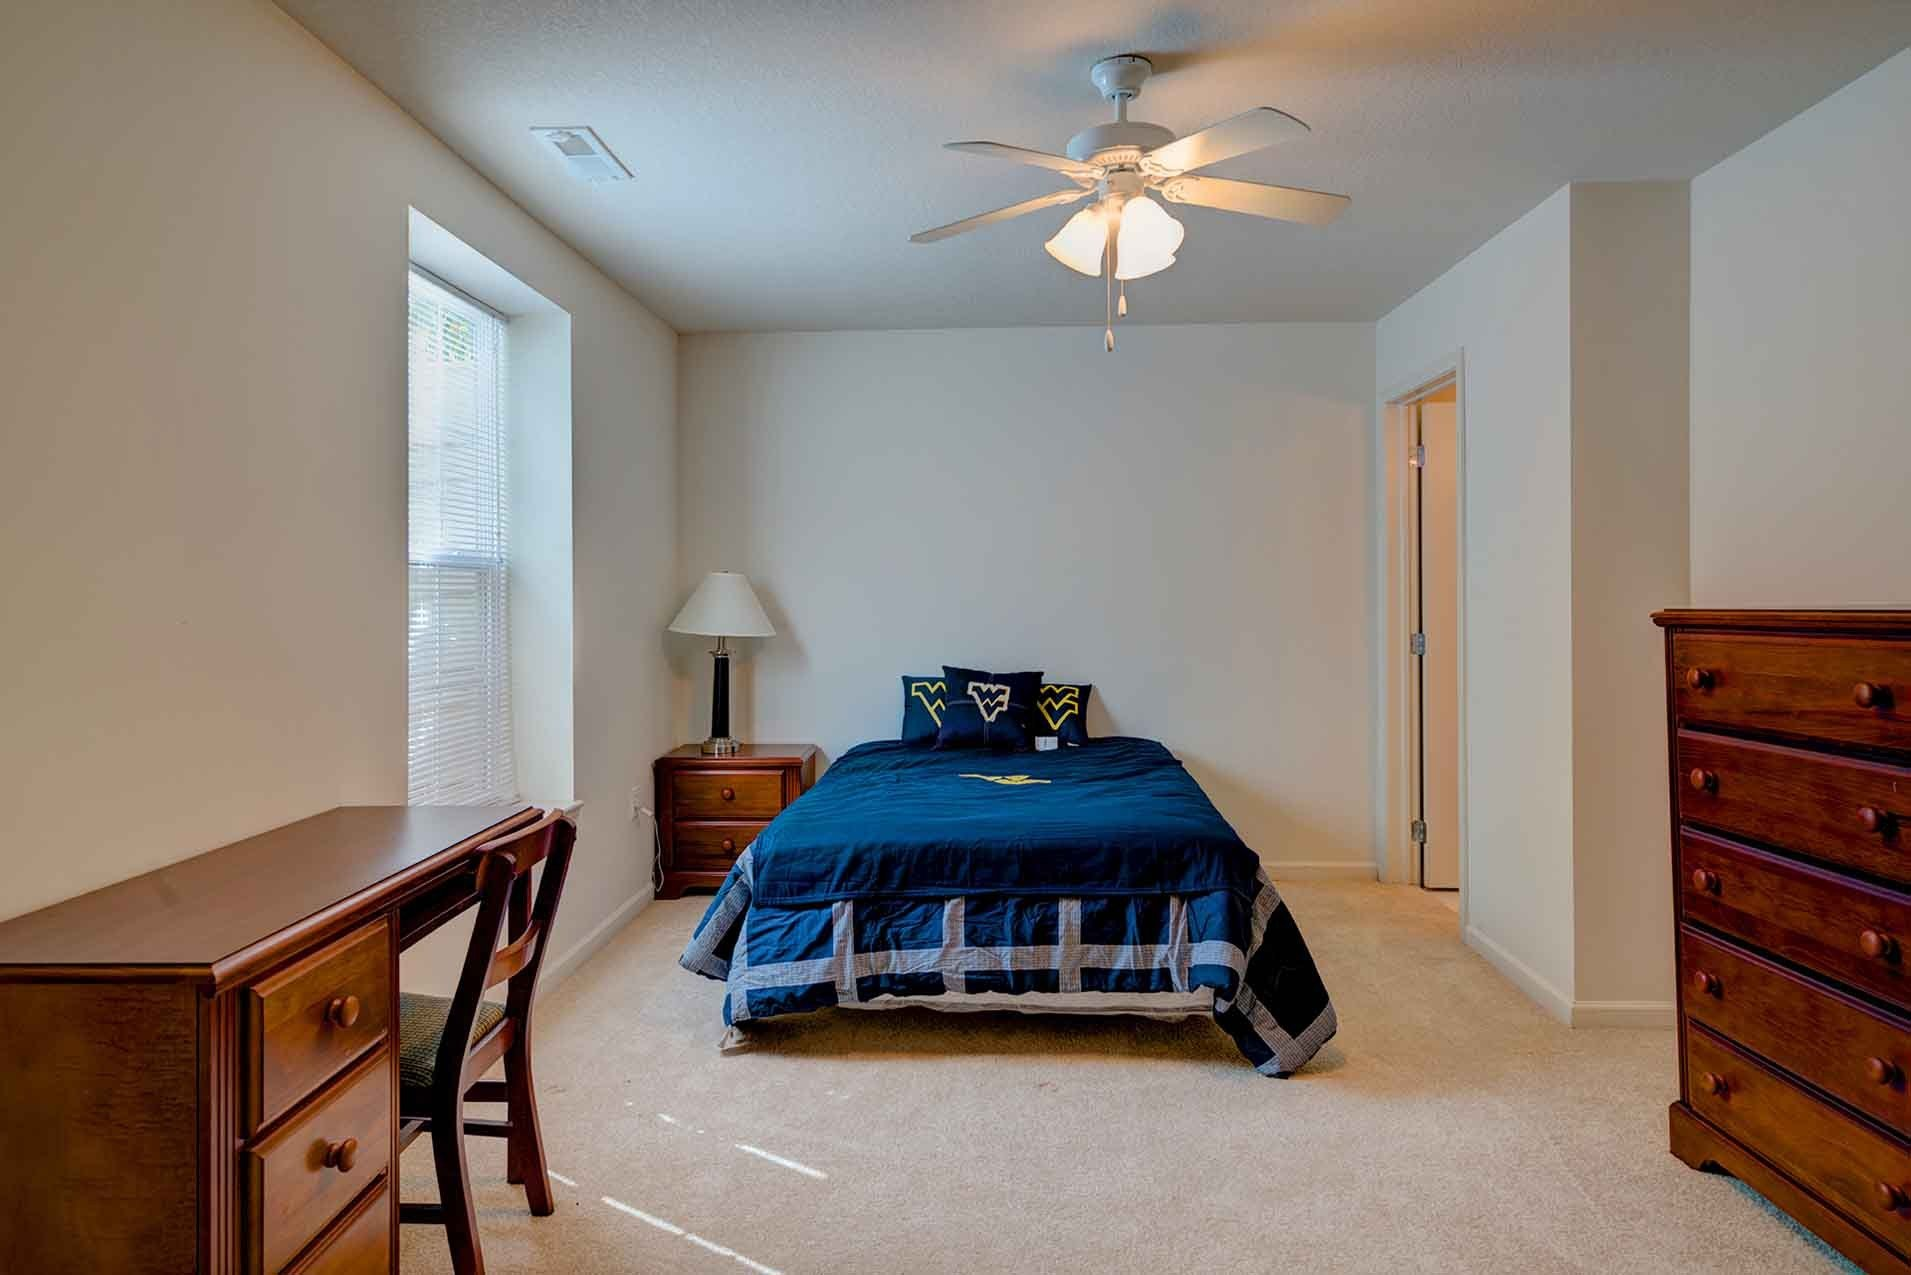 Best View Our Floorplan Options Today Copper Beech Morgantown With Pictures